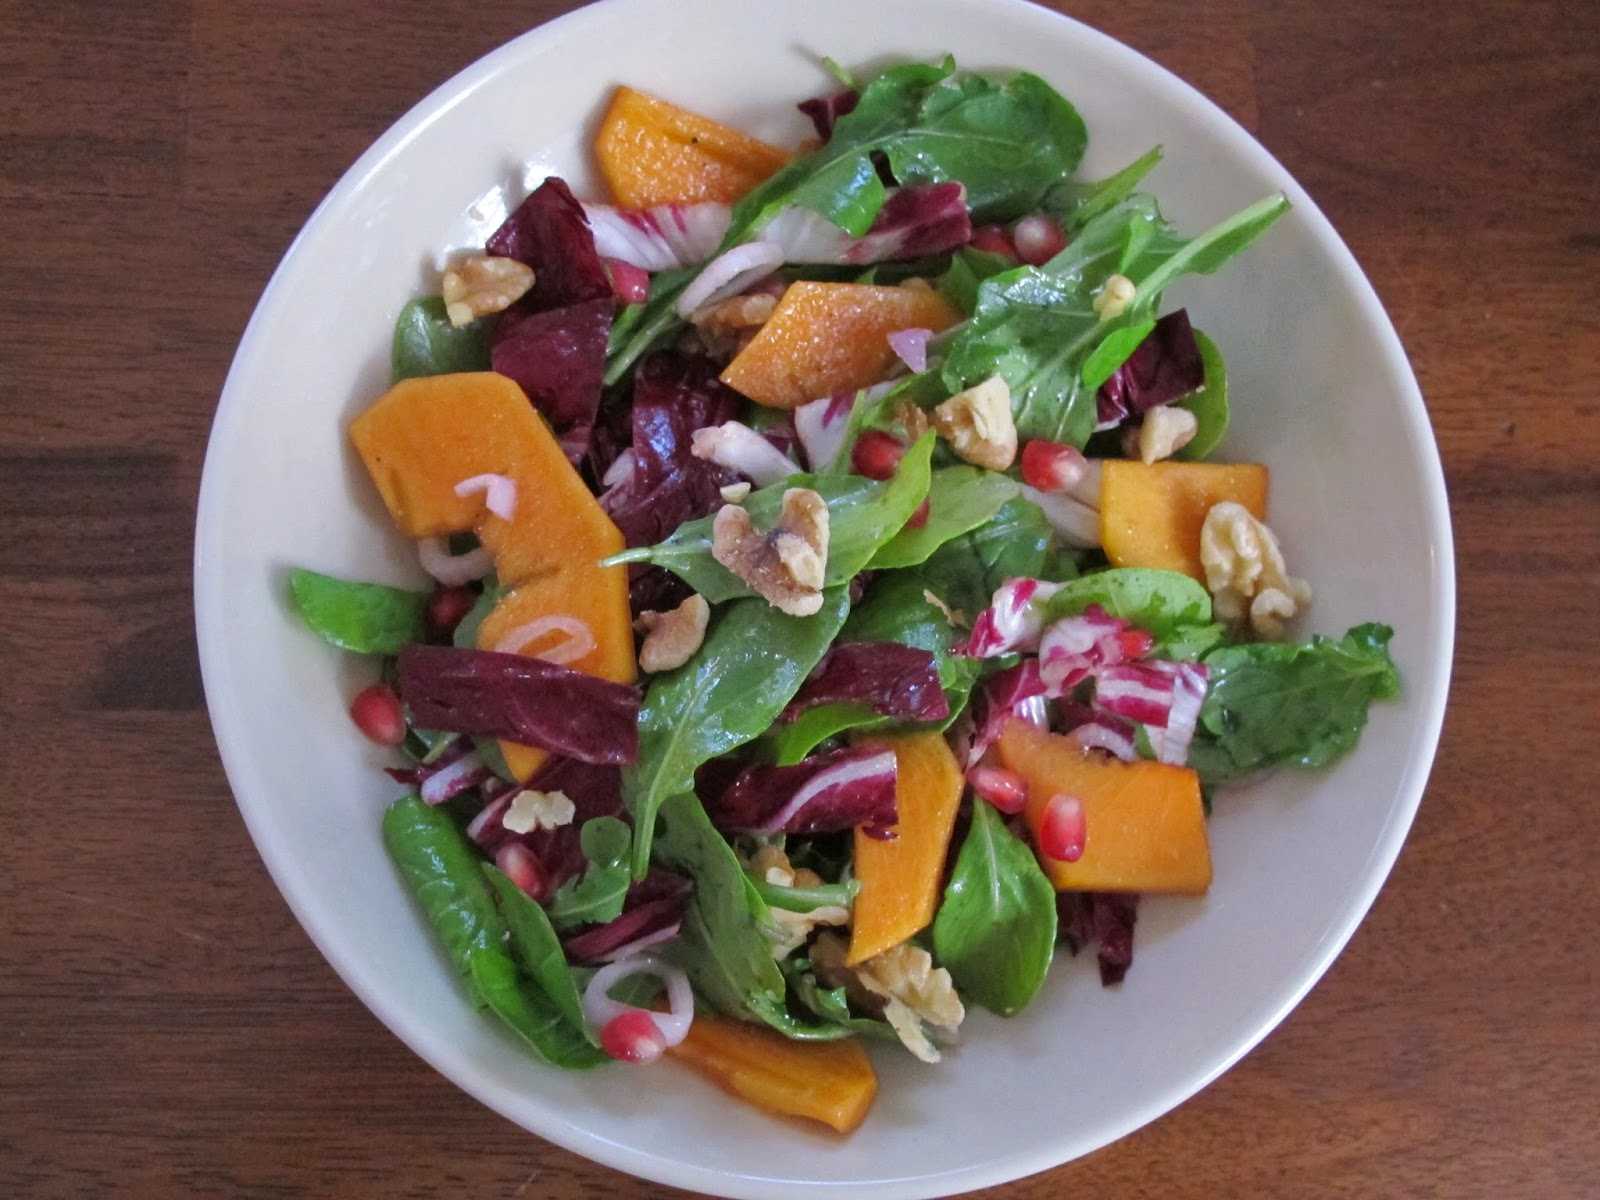 Persimmon, Pomegranate, Walnut, and Arugula Salad